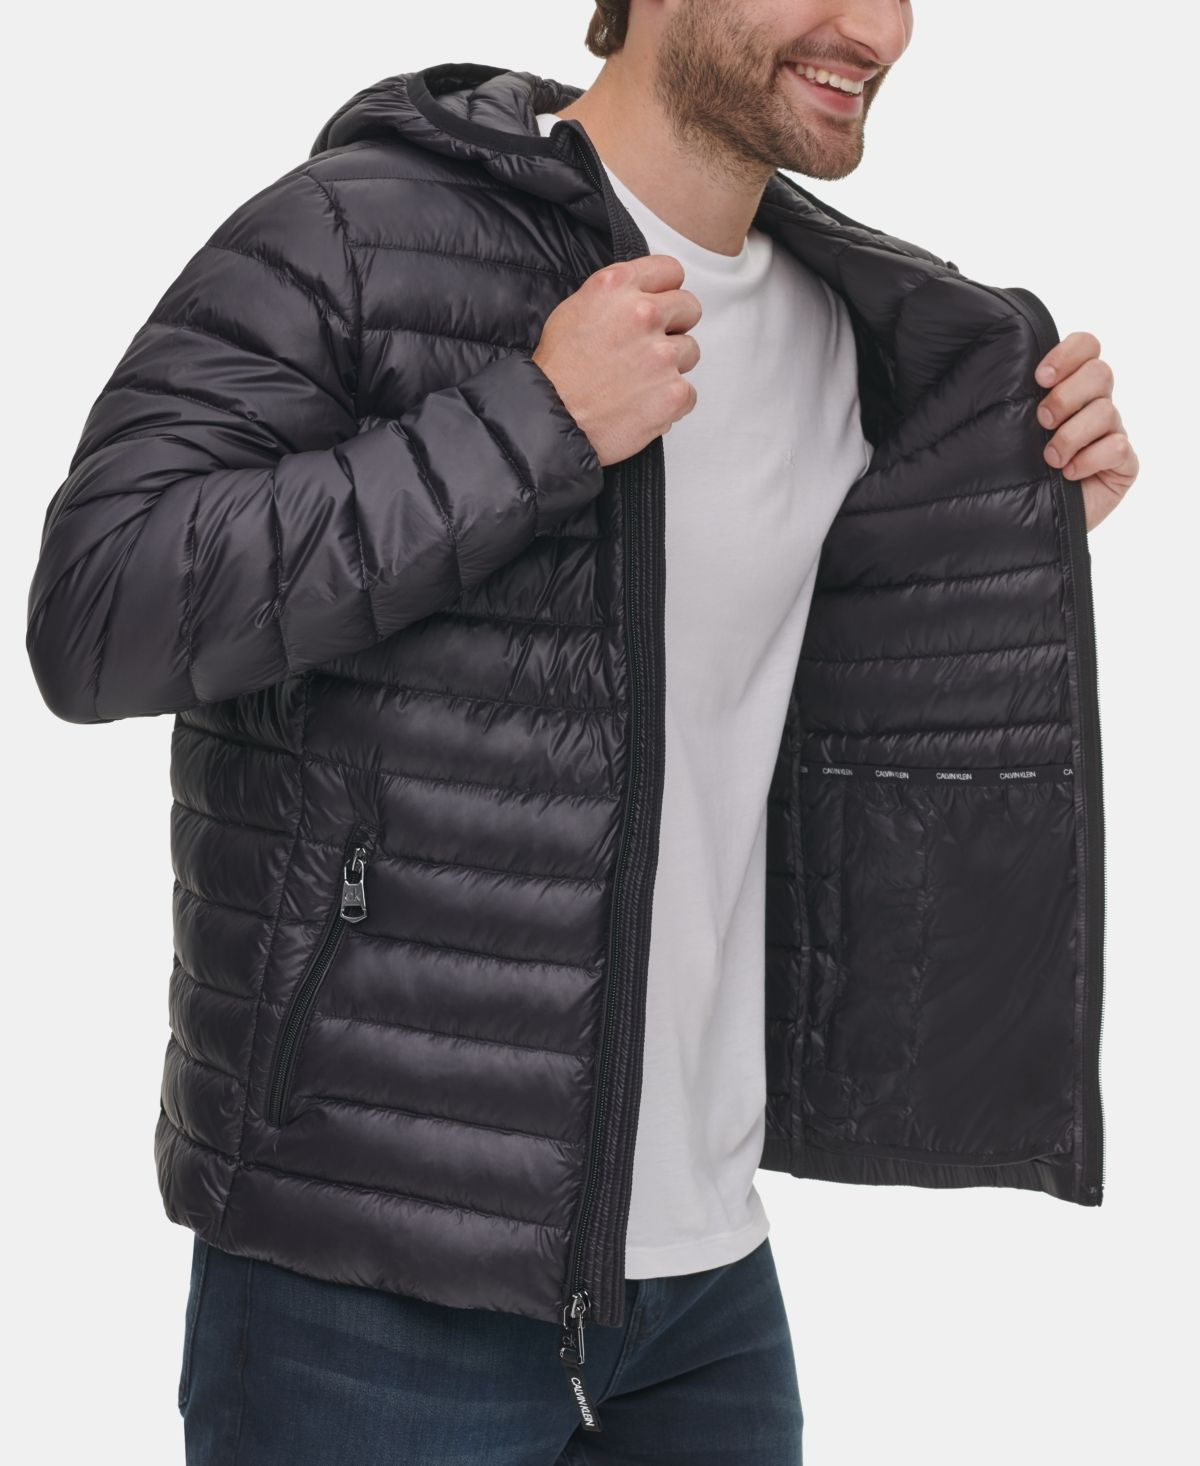 Calvin Klein Men S Packable Down Hooded Puffer Jacket Created For Macy S Reviews Coats Jackets Men Macy S Mens Puffer Jacket Puffer Jacket Men Puffer Jackets [ 1466 x 1200 Pixel ]